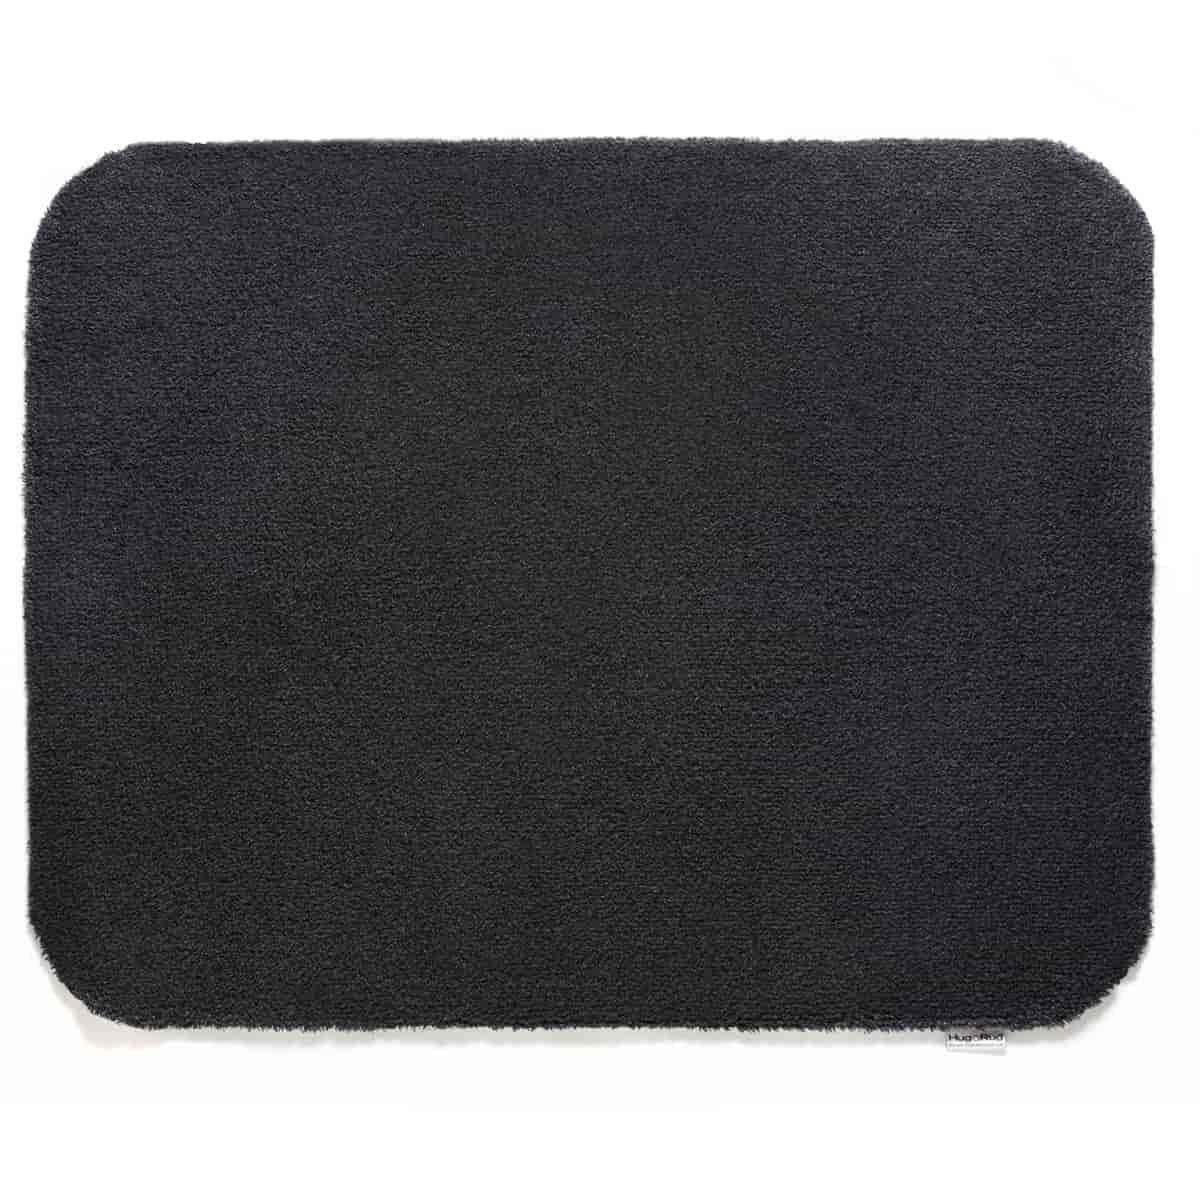 paillasson tapis charcoal 100 recycl 150x65cm paillasson nettoie bottes. Black Bedroom Furniture Sets. Home Design Ideas